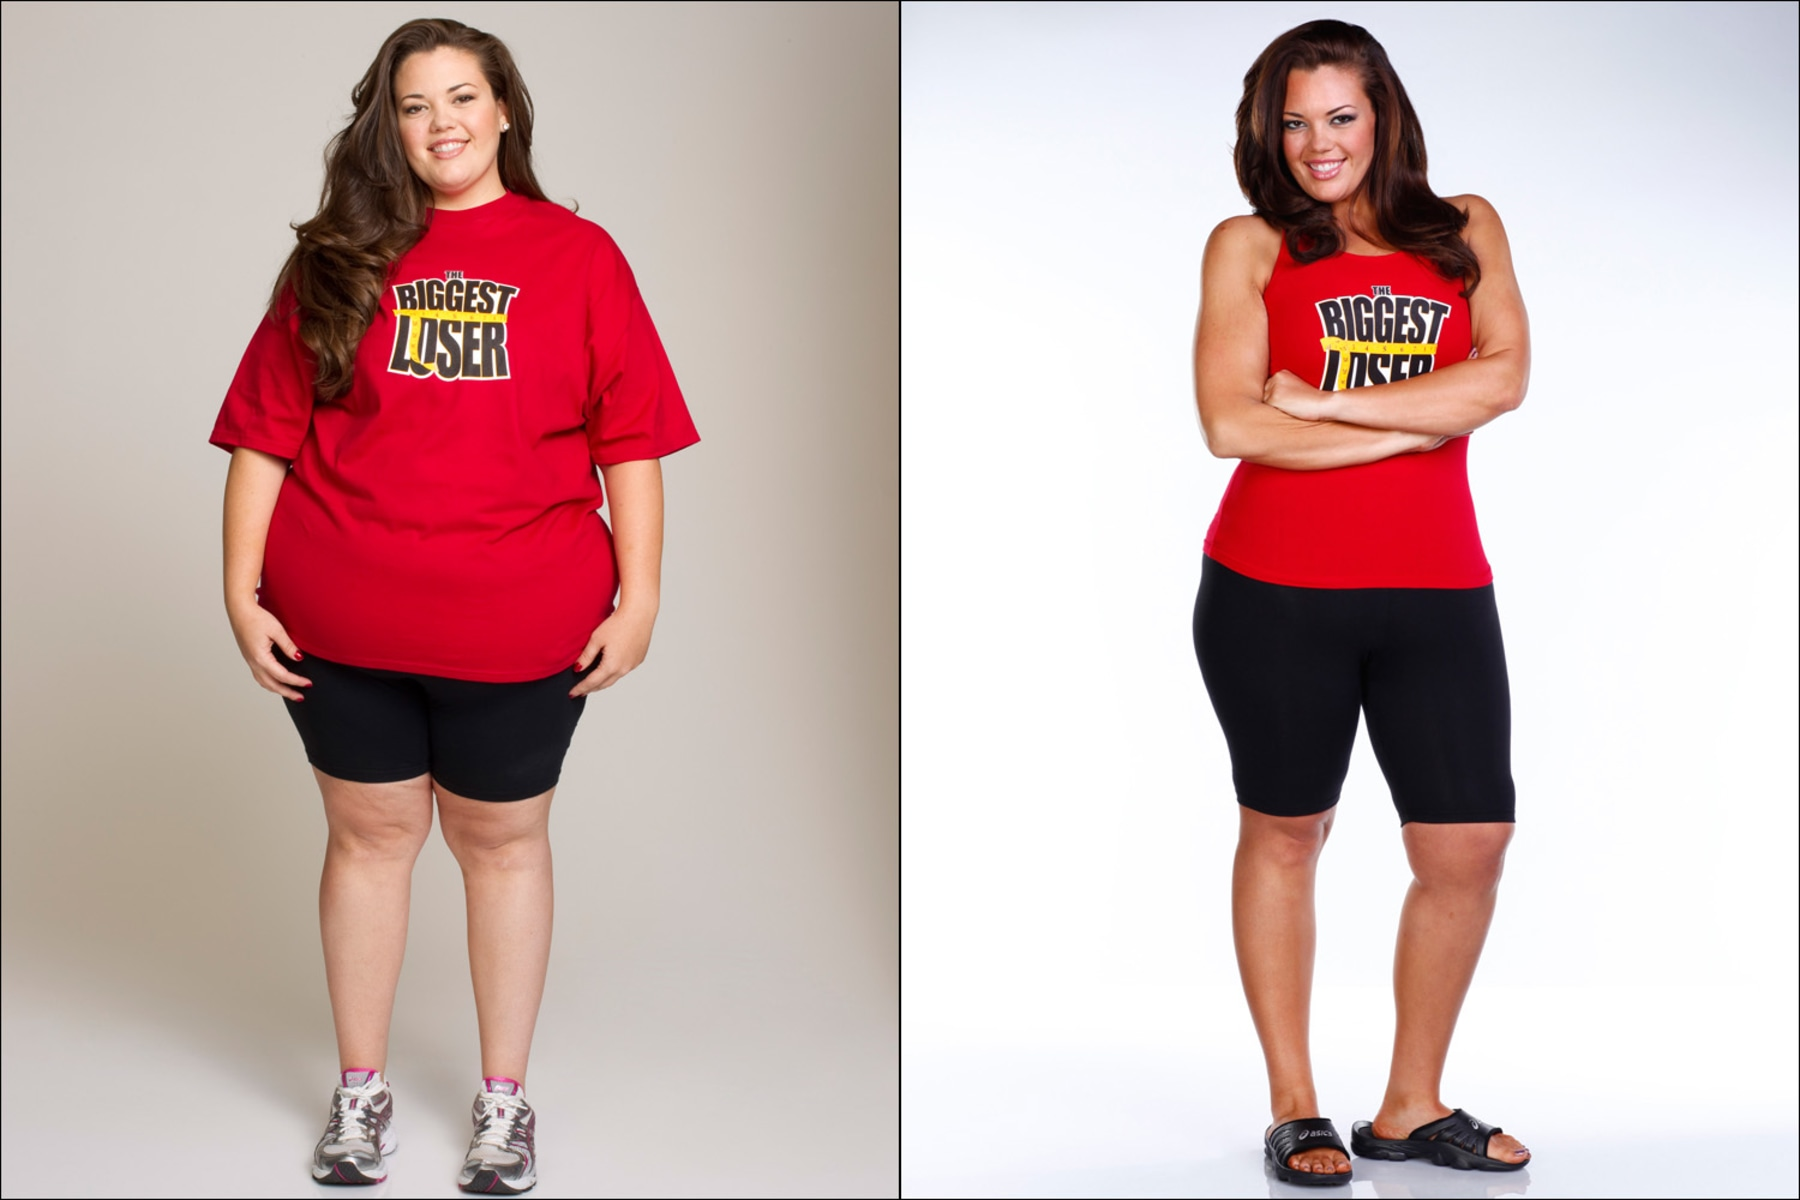 'Biggest Loser 10': Before and after - TODAY.com